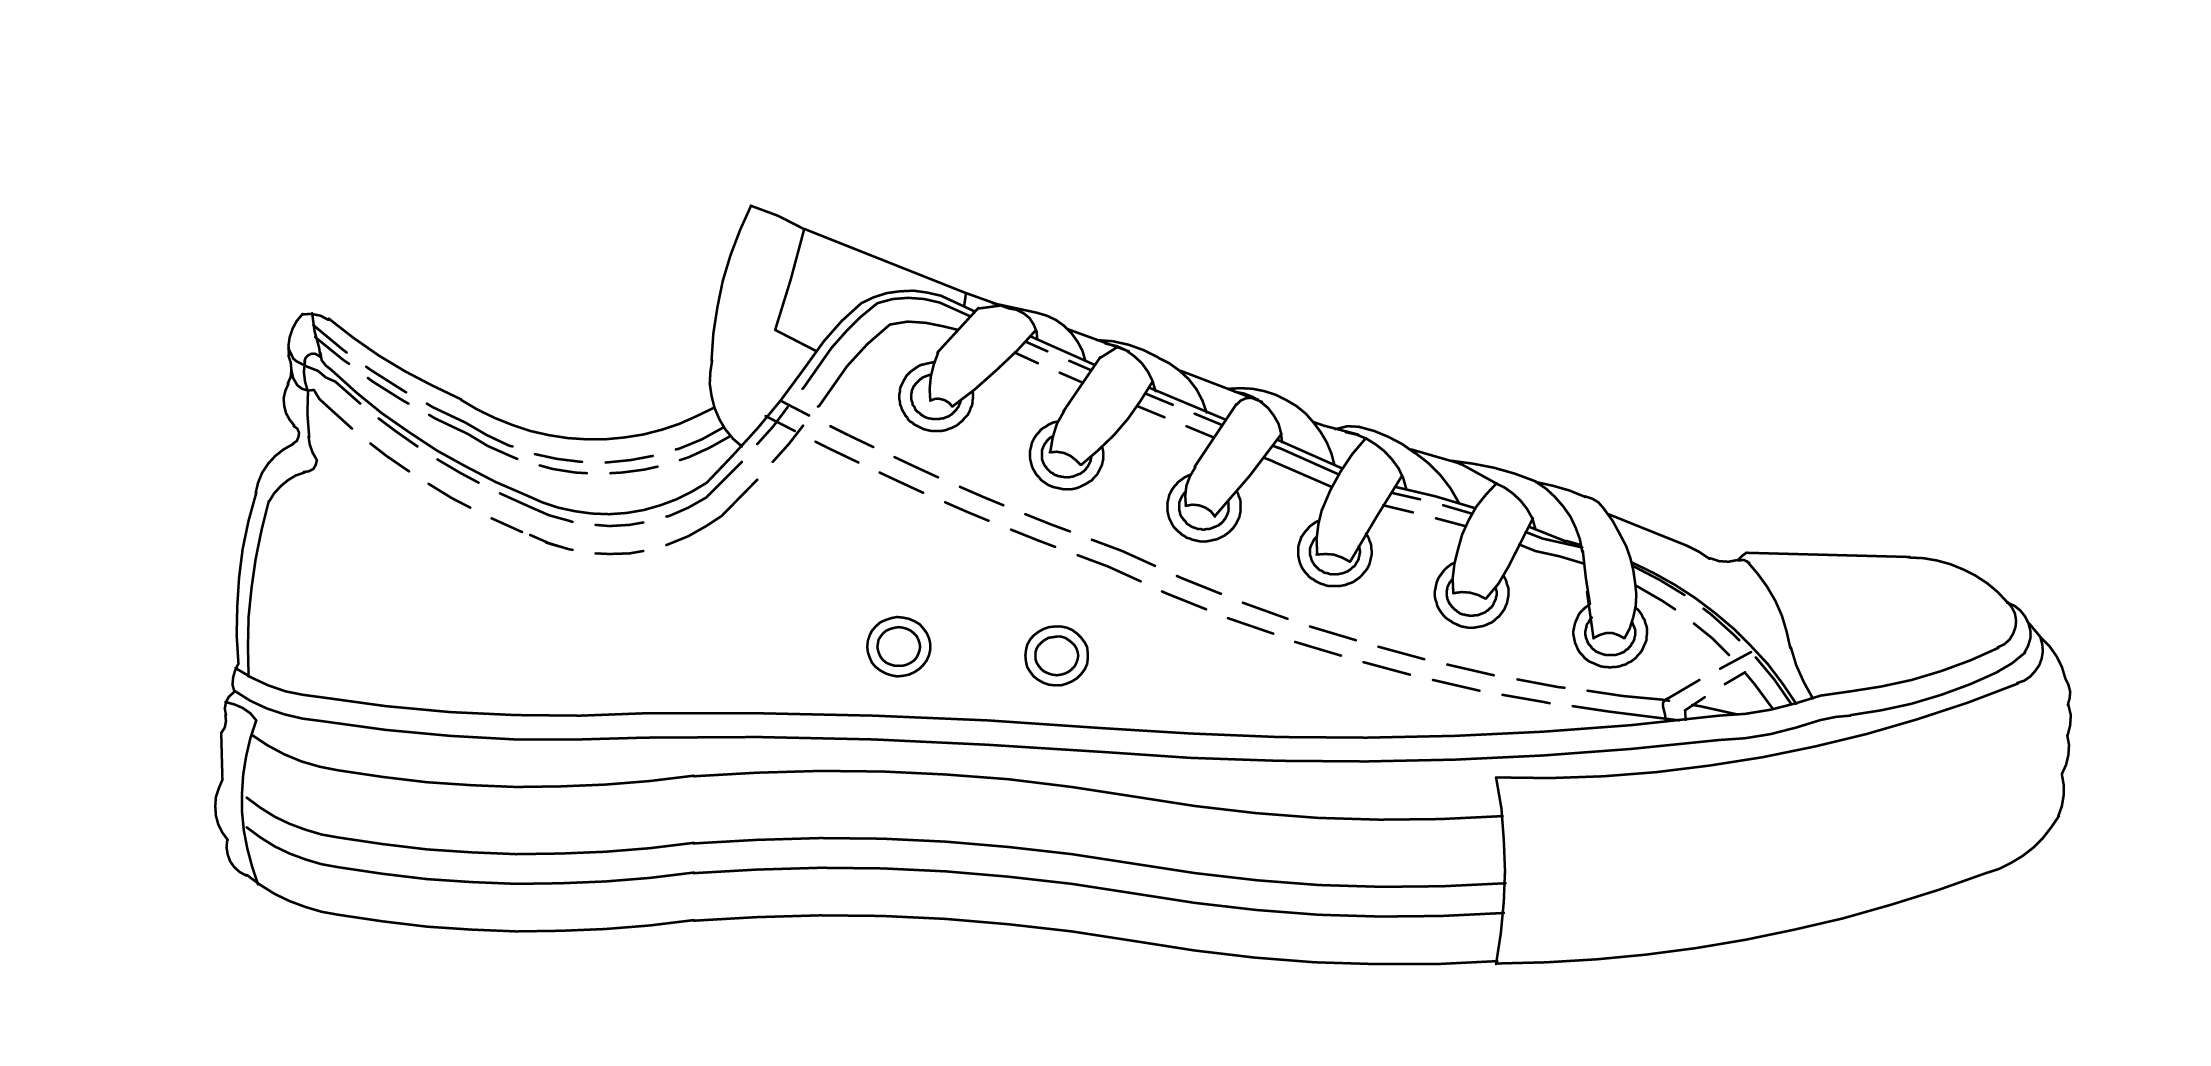 technical drawings product by marcia prentice at